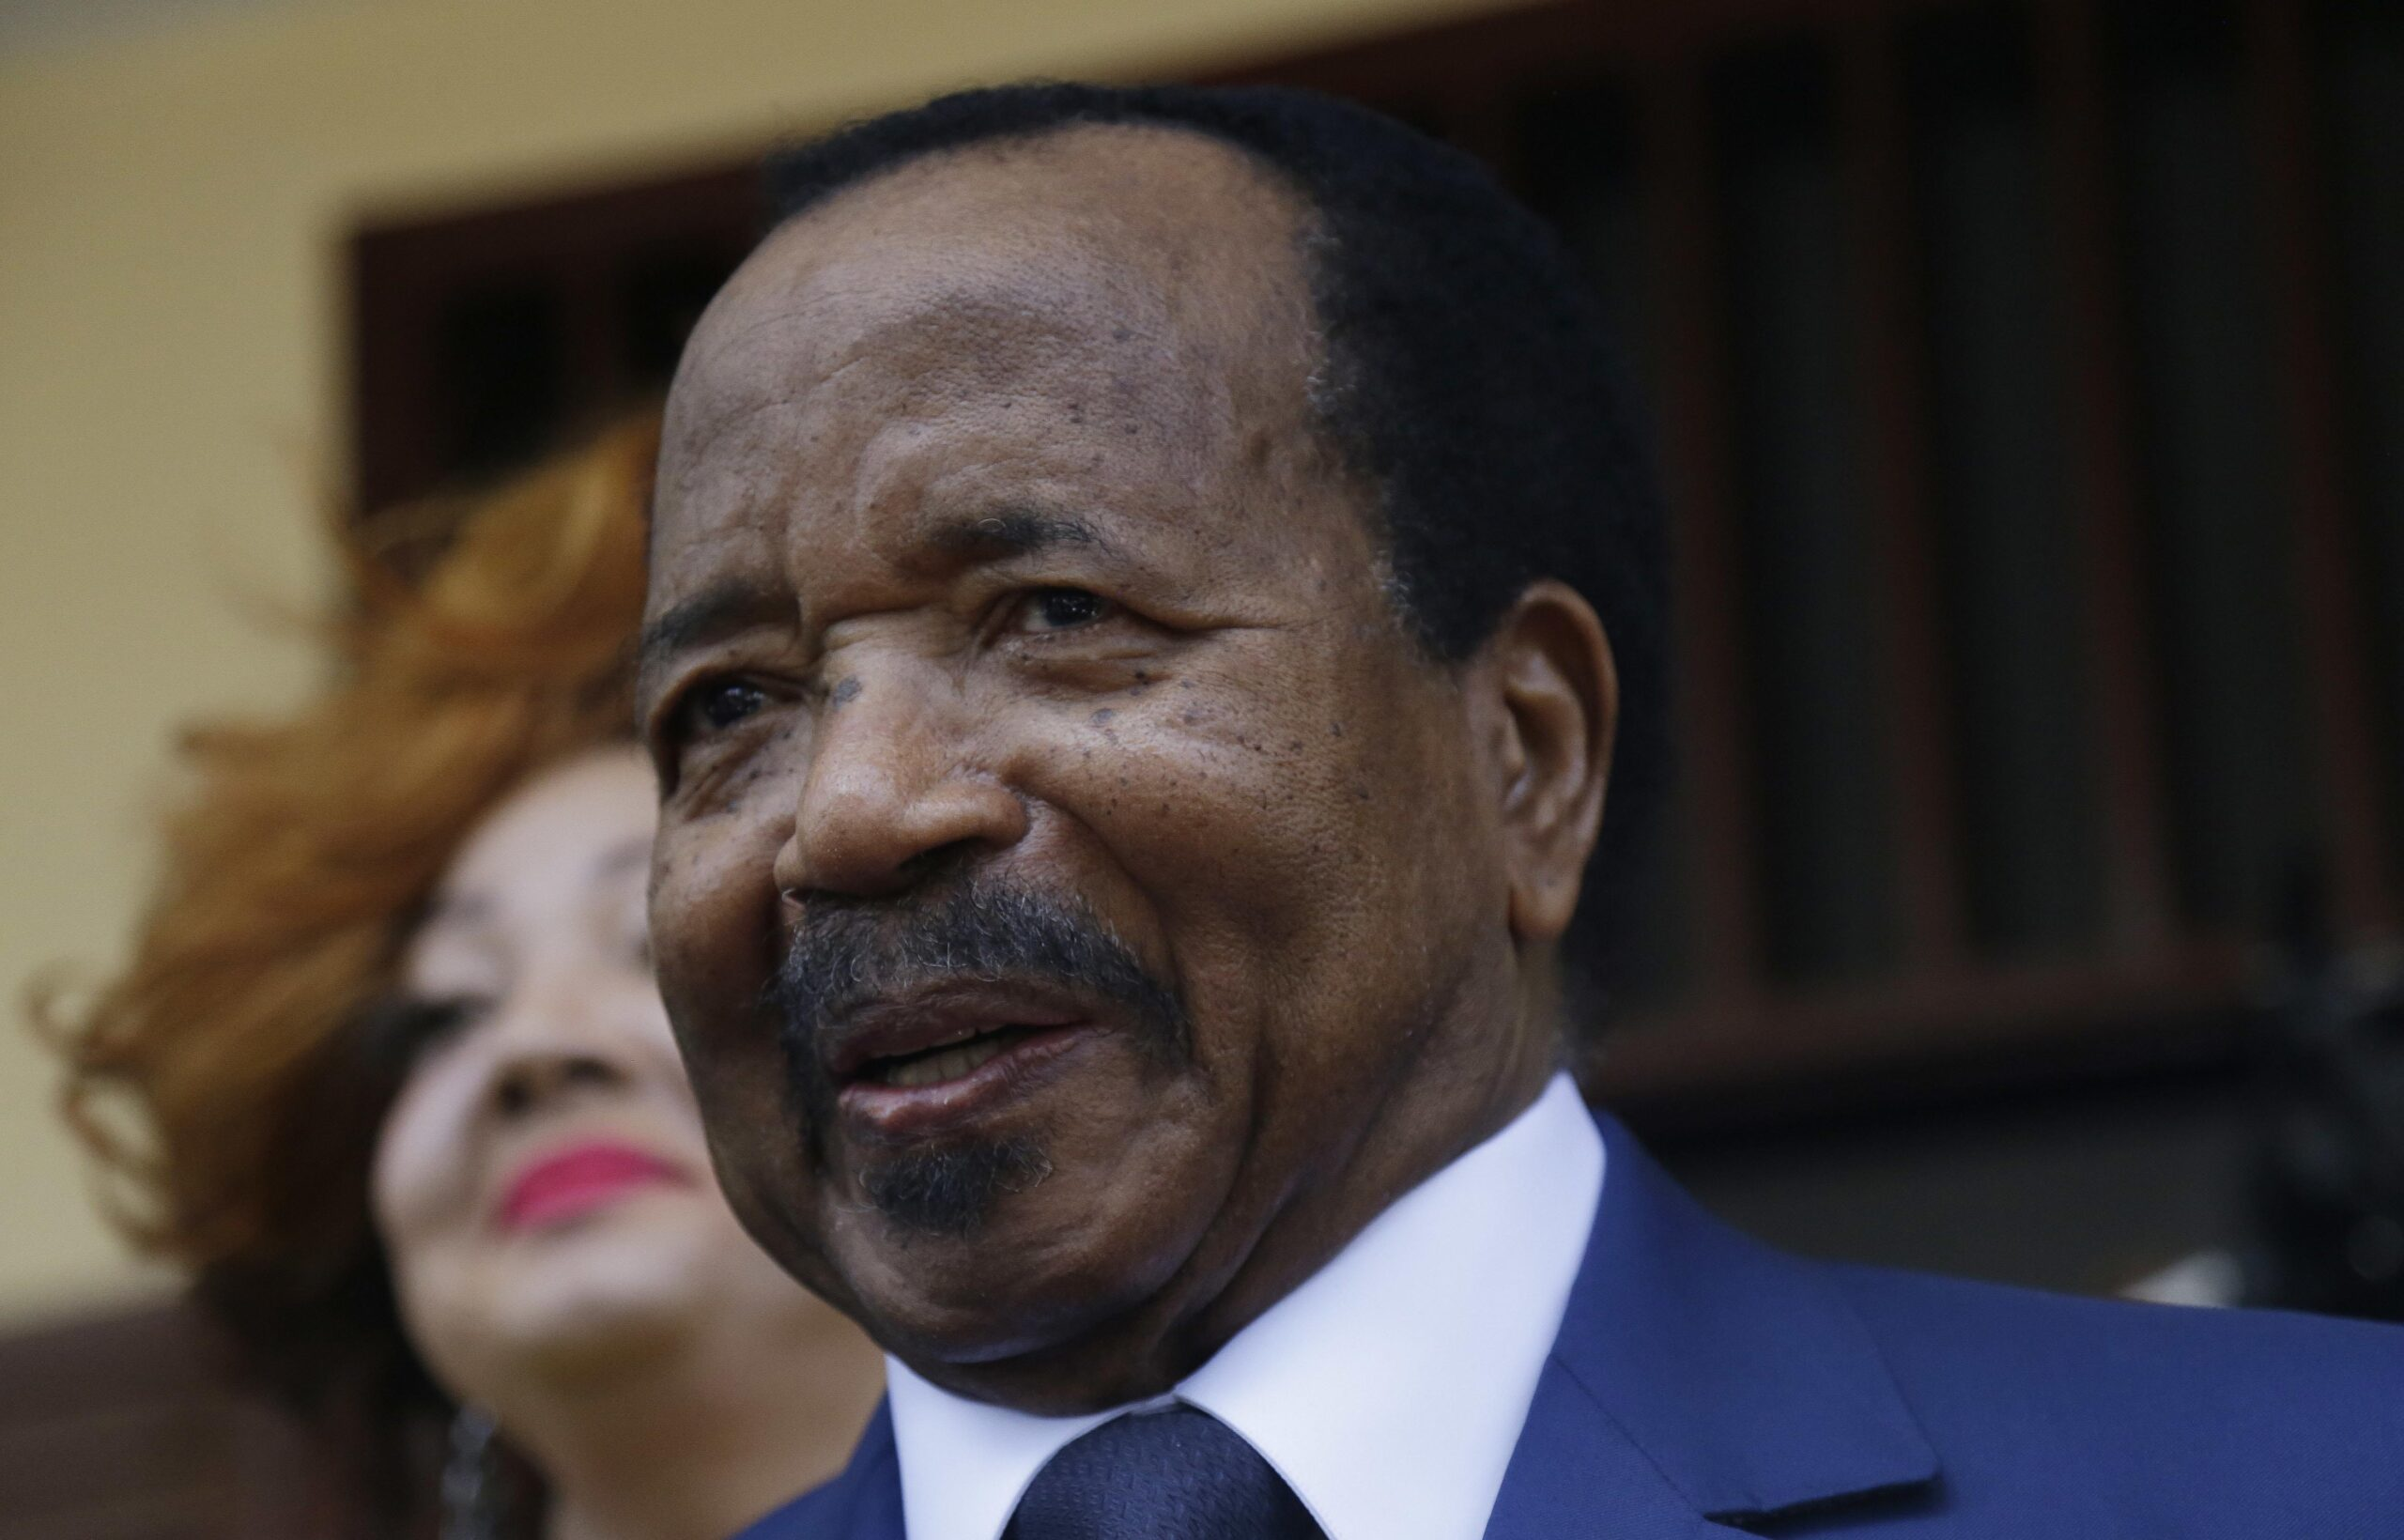 Cameroon: Ensure Credible Inquiry on Covid-19 Funds